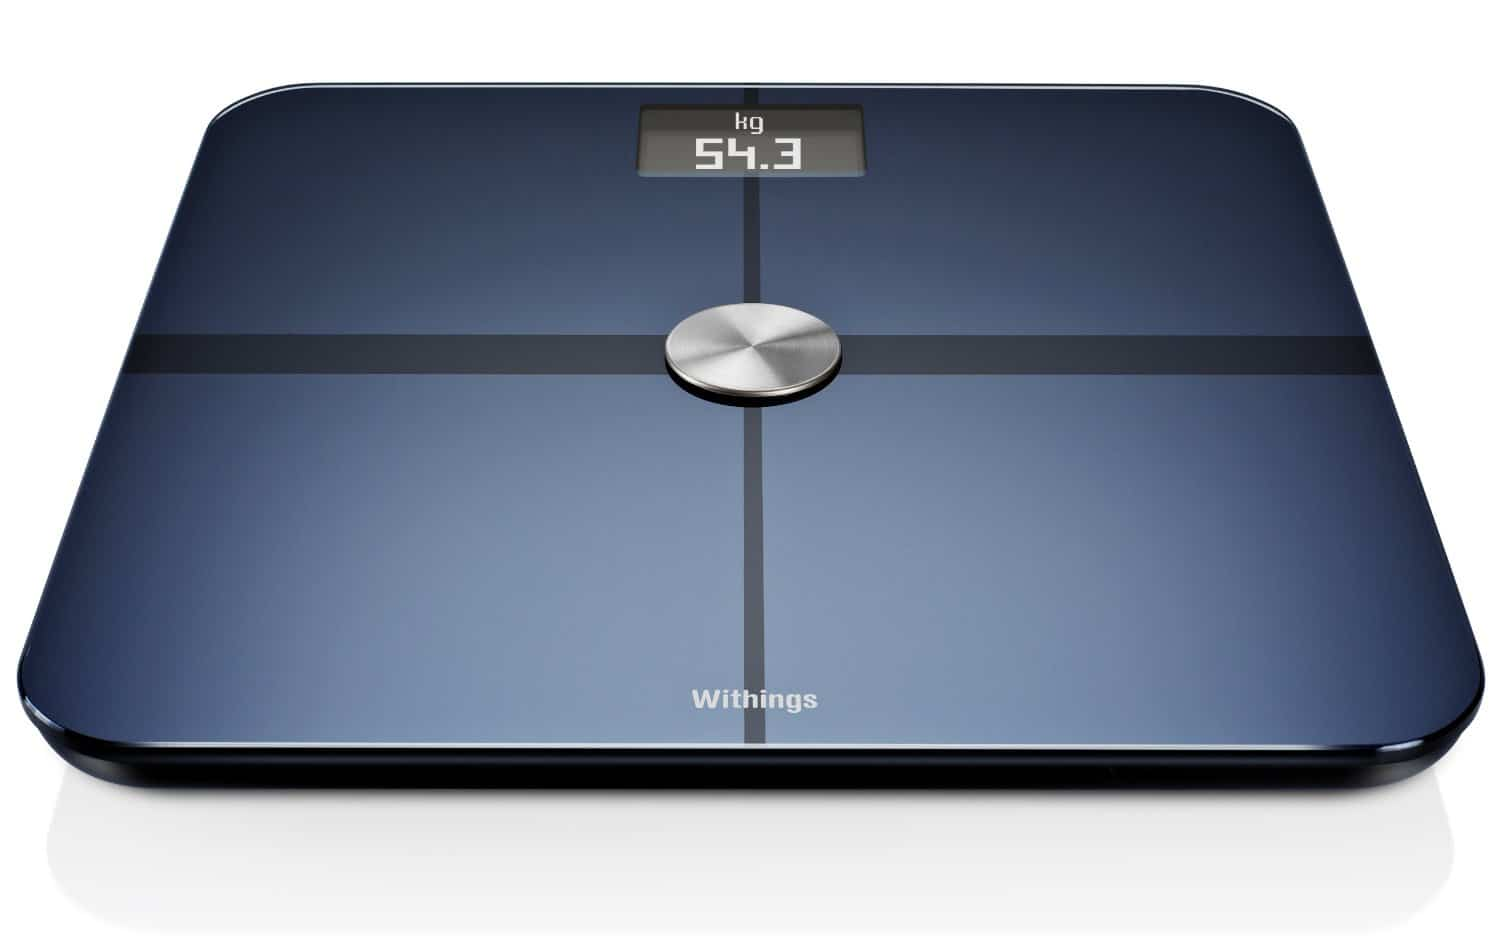 Withings WS-50 Smart Body Analyzer Featured